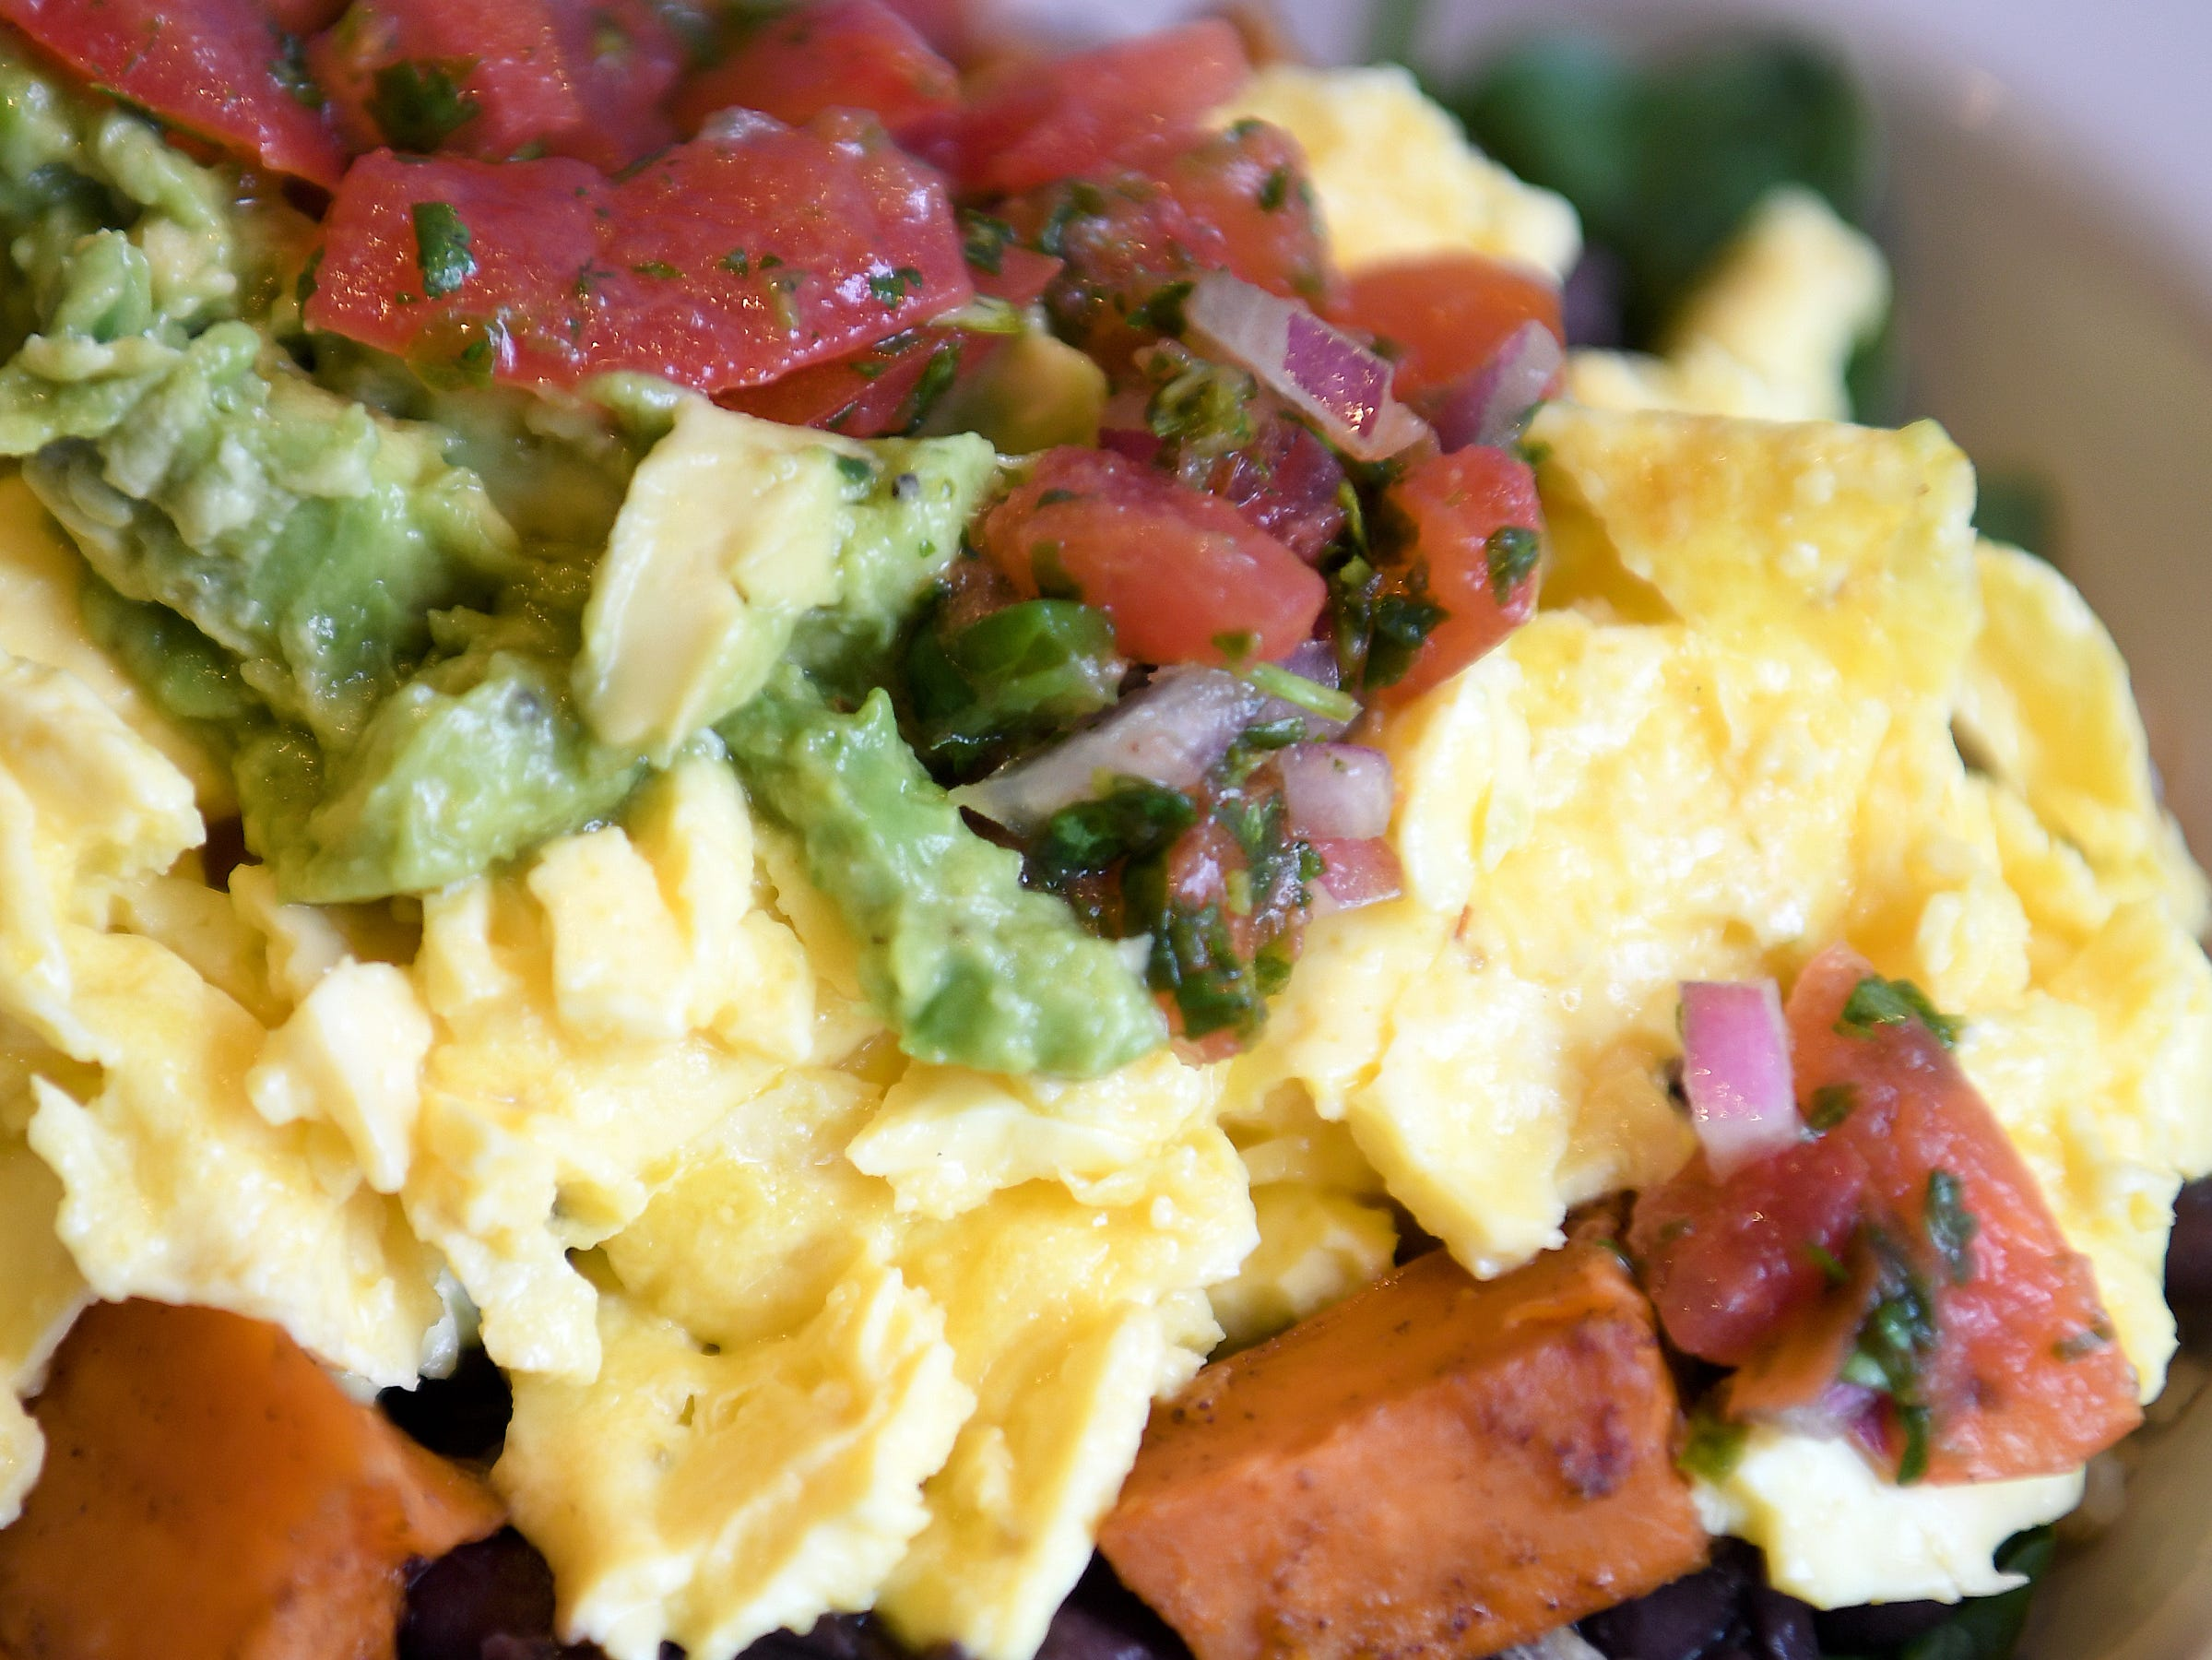 The veggie breakfast bowl at Early Girl's West Asheville location is rice, black beans, sweet potatoes, fresh spinach, aged cheddar cheese and scrambled eggs topped with salsa and avocado relish.